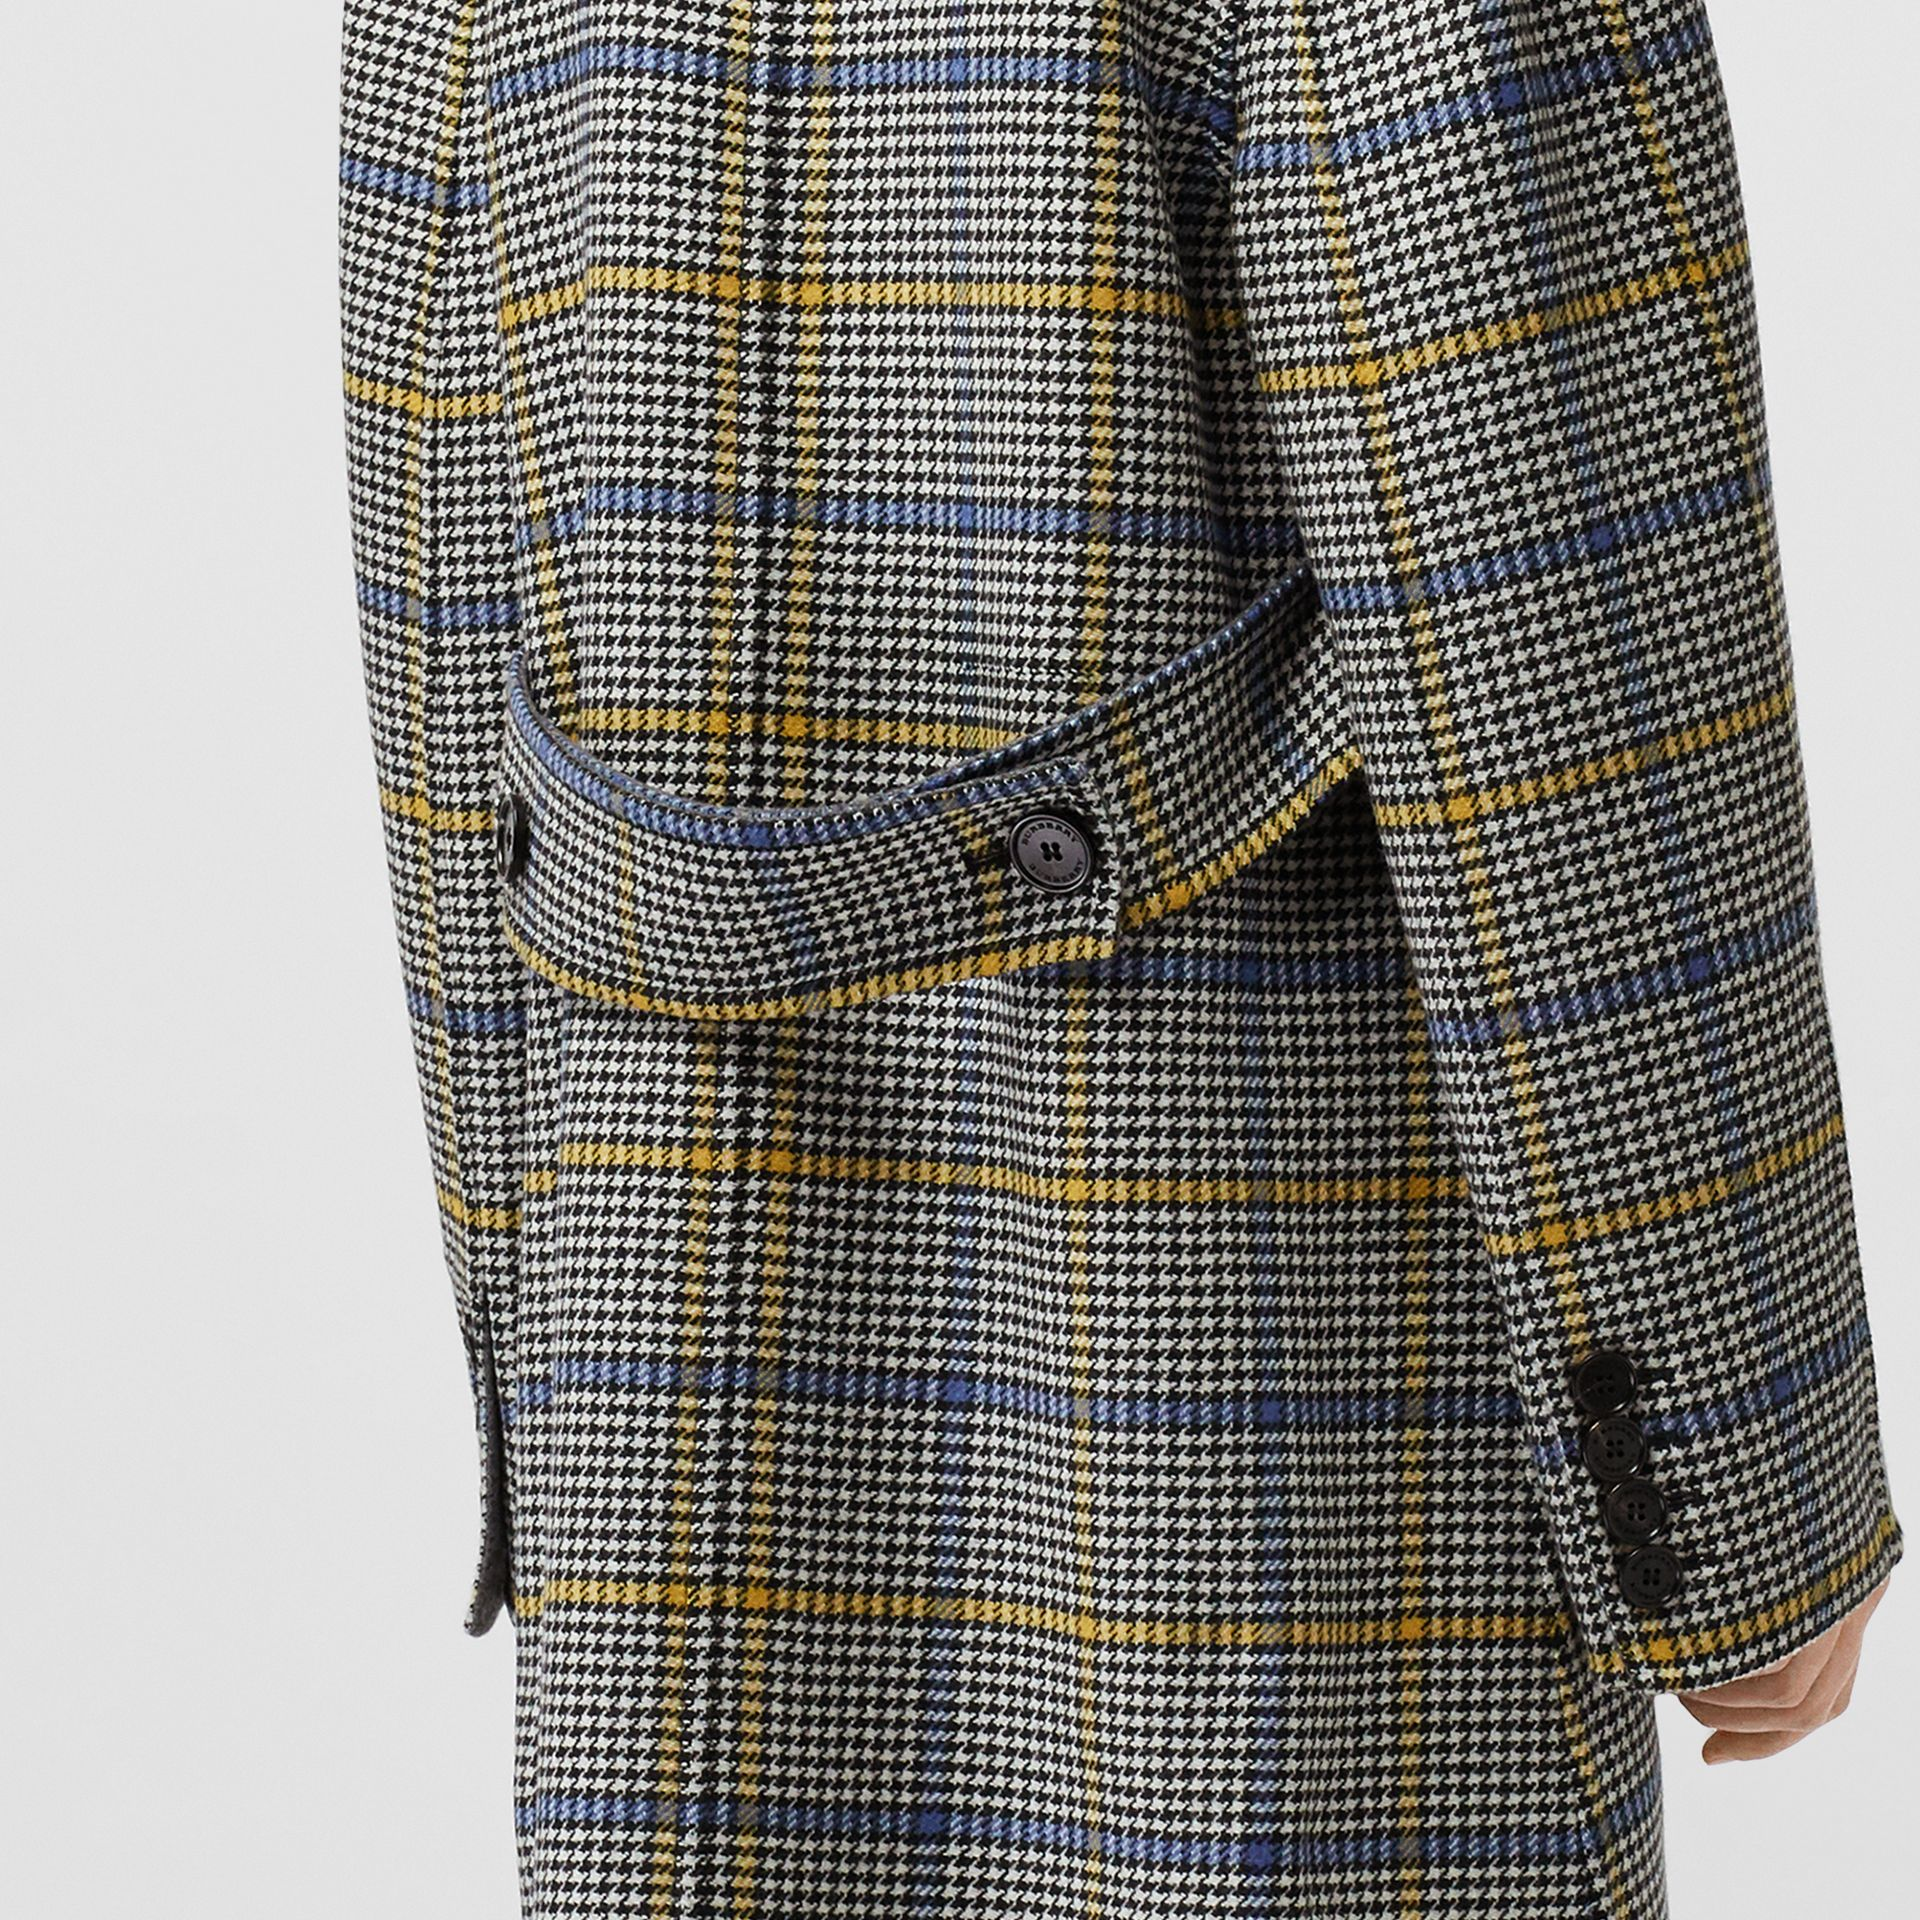 Manteau en laine et cachemire double face à motif check (Parchemin) - Femme | Burberry - photo de la galerie 4